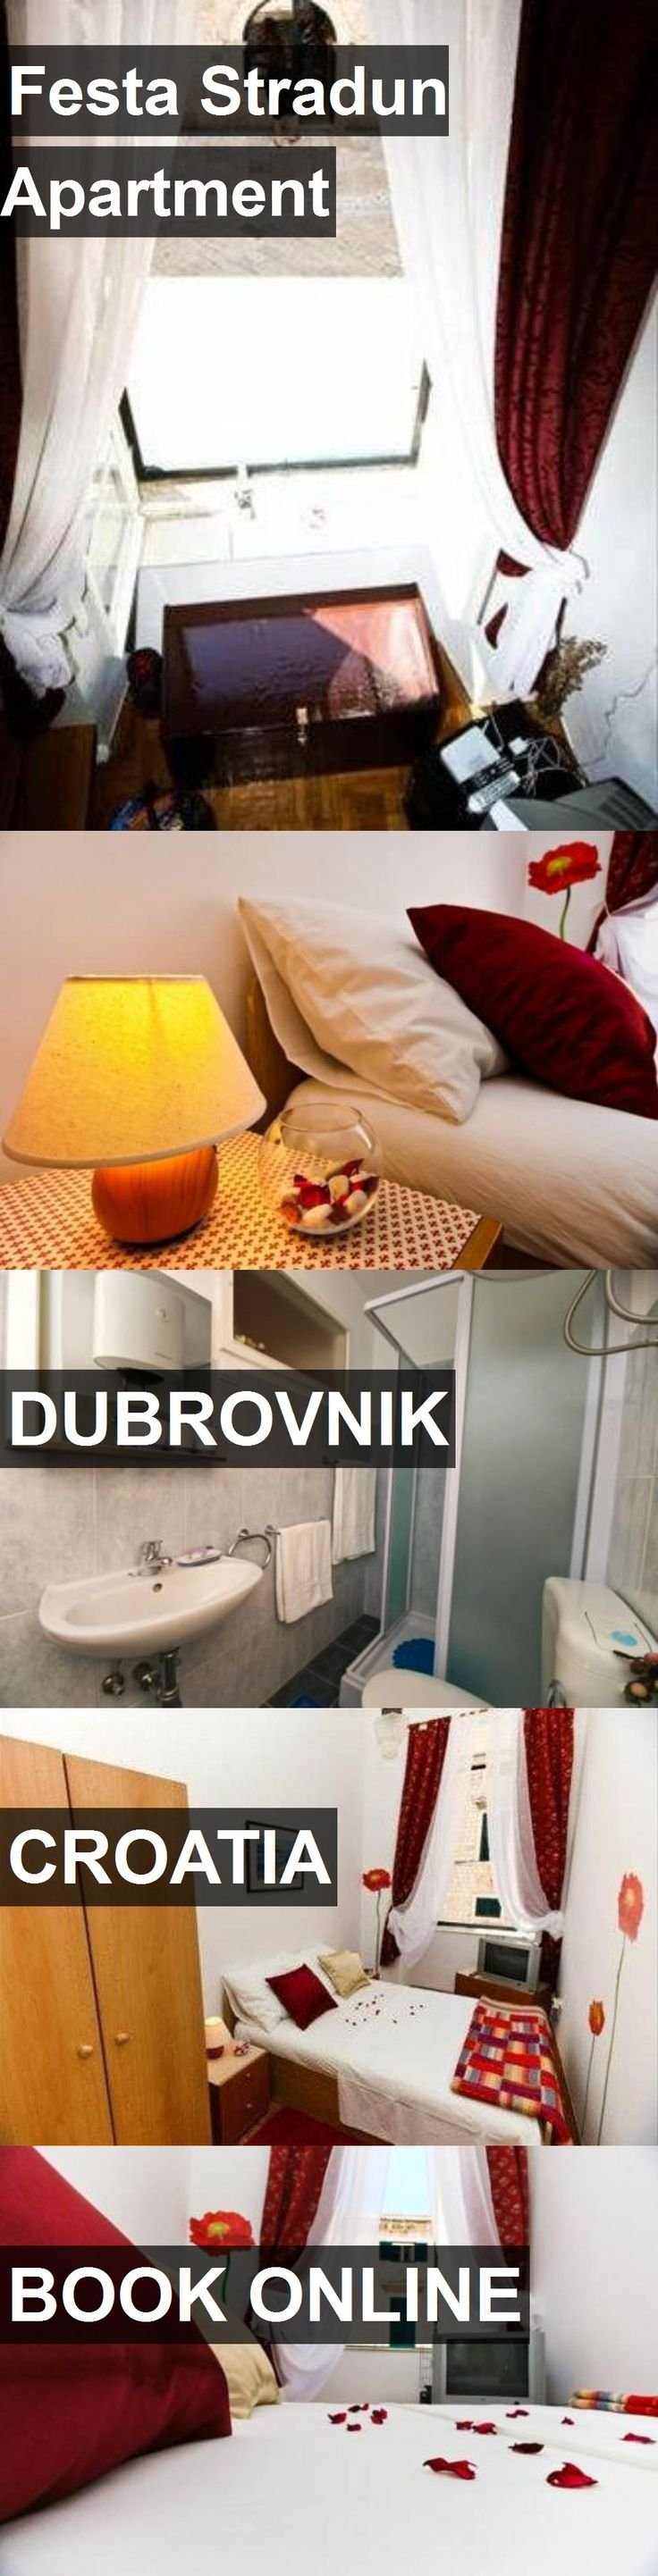 Hotel Festa Stradun Apartment in Dubrovnik, Croatia. For more information, photos, reviews and best prices please follow the link. #Croatia #Dubrovnik #FestaStradunApartment #hotel #travel #vacation